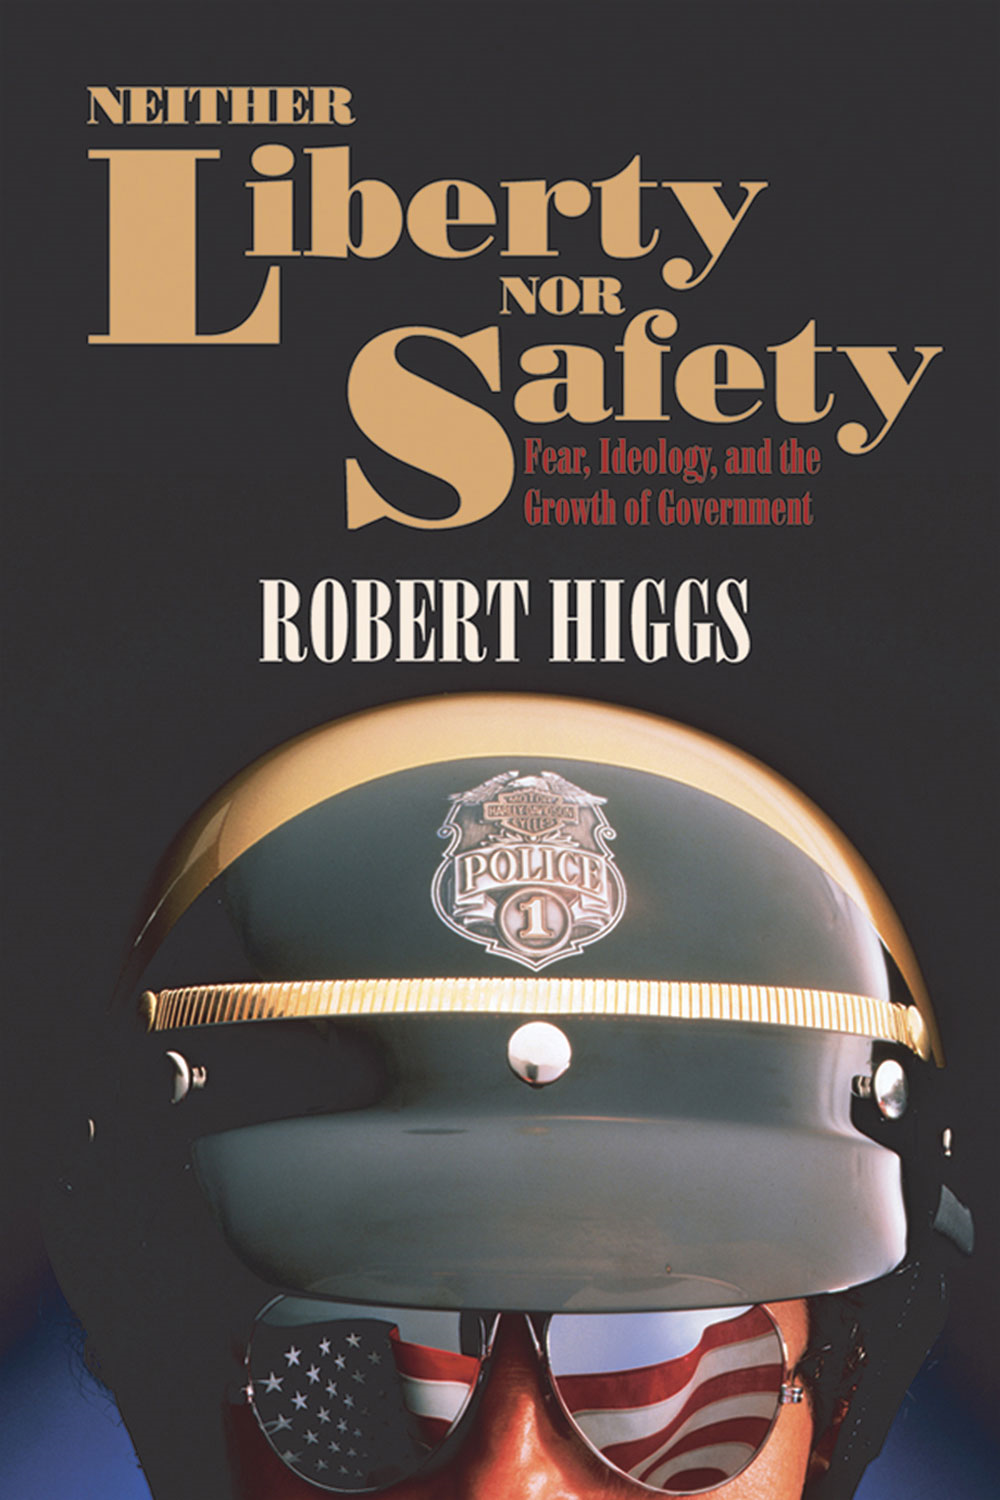 Neither Liberty nor Safety: Fear, Ideology, and the Growth of Government By: Robert Higgs